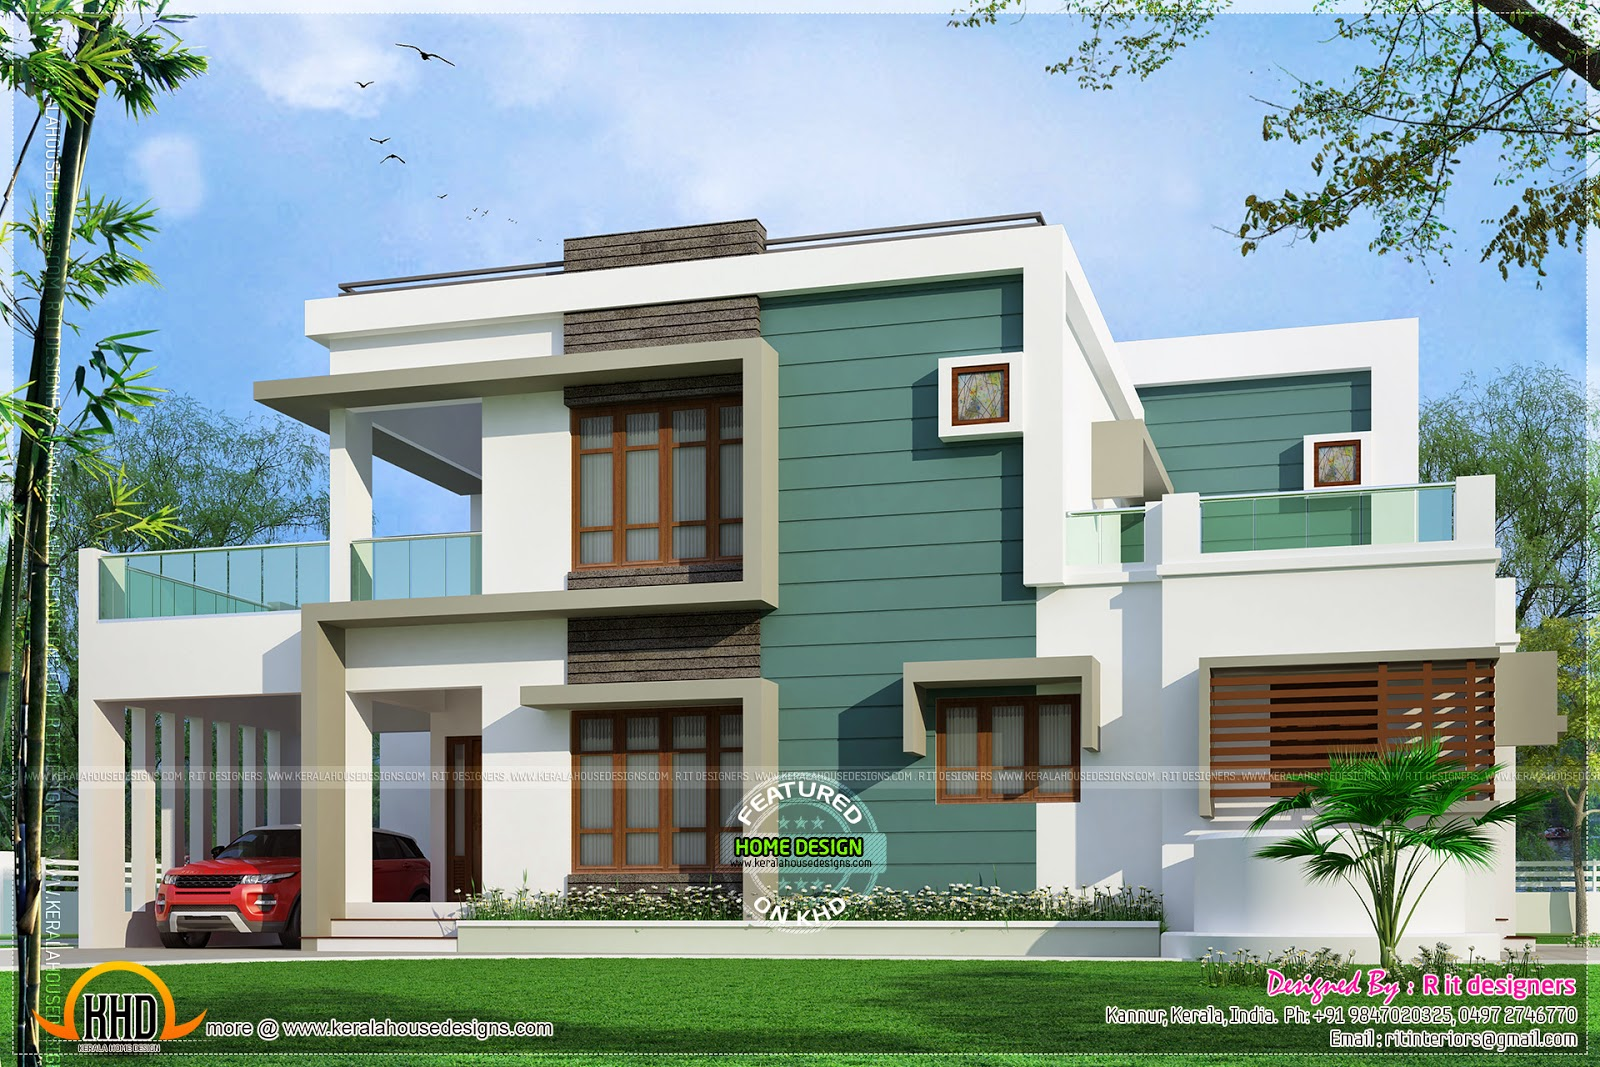 Kannur home design kerala home design and floor plans for Kerala house plans and designs